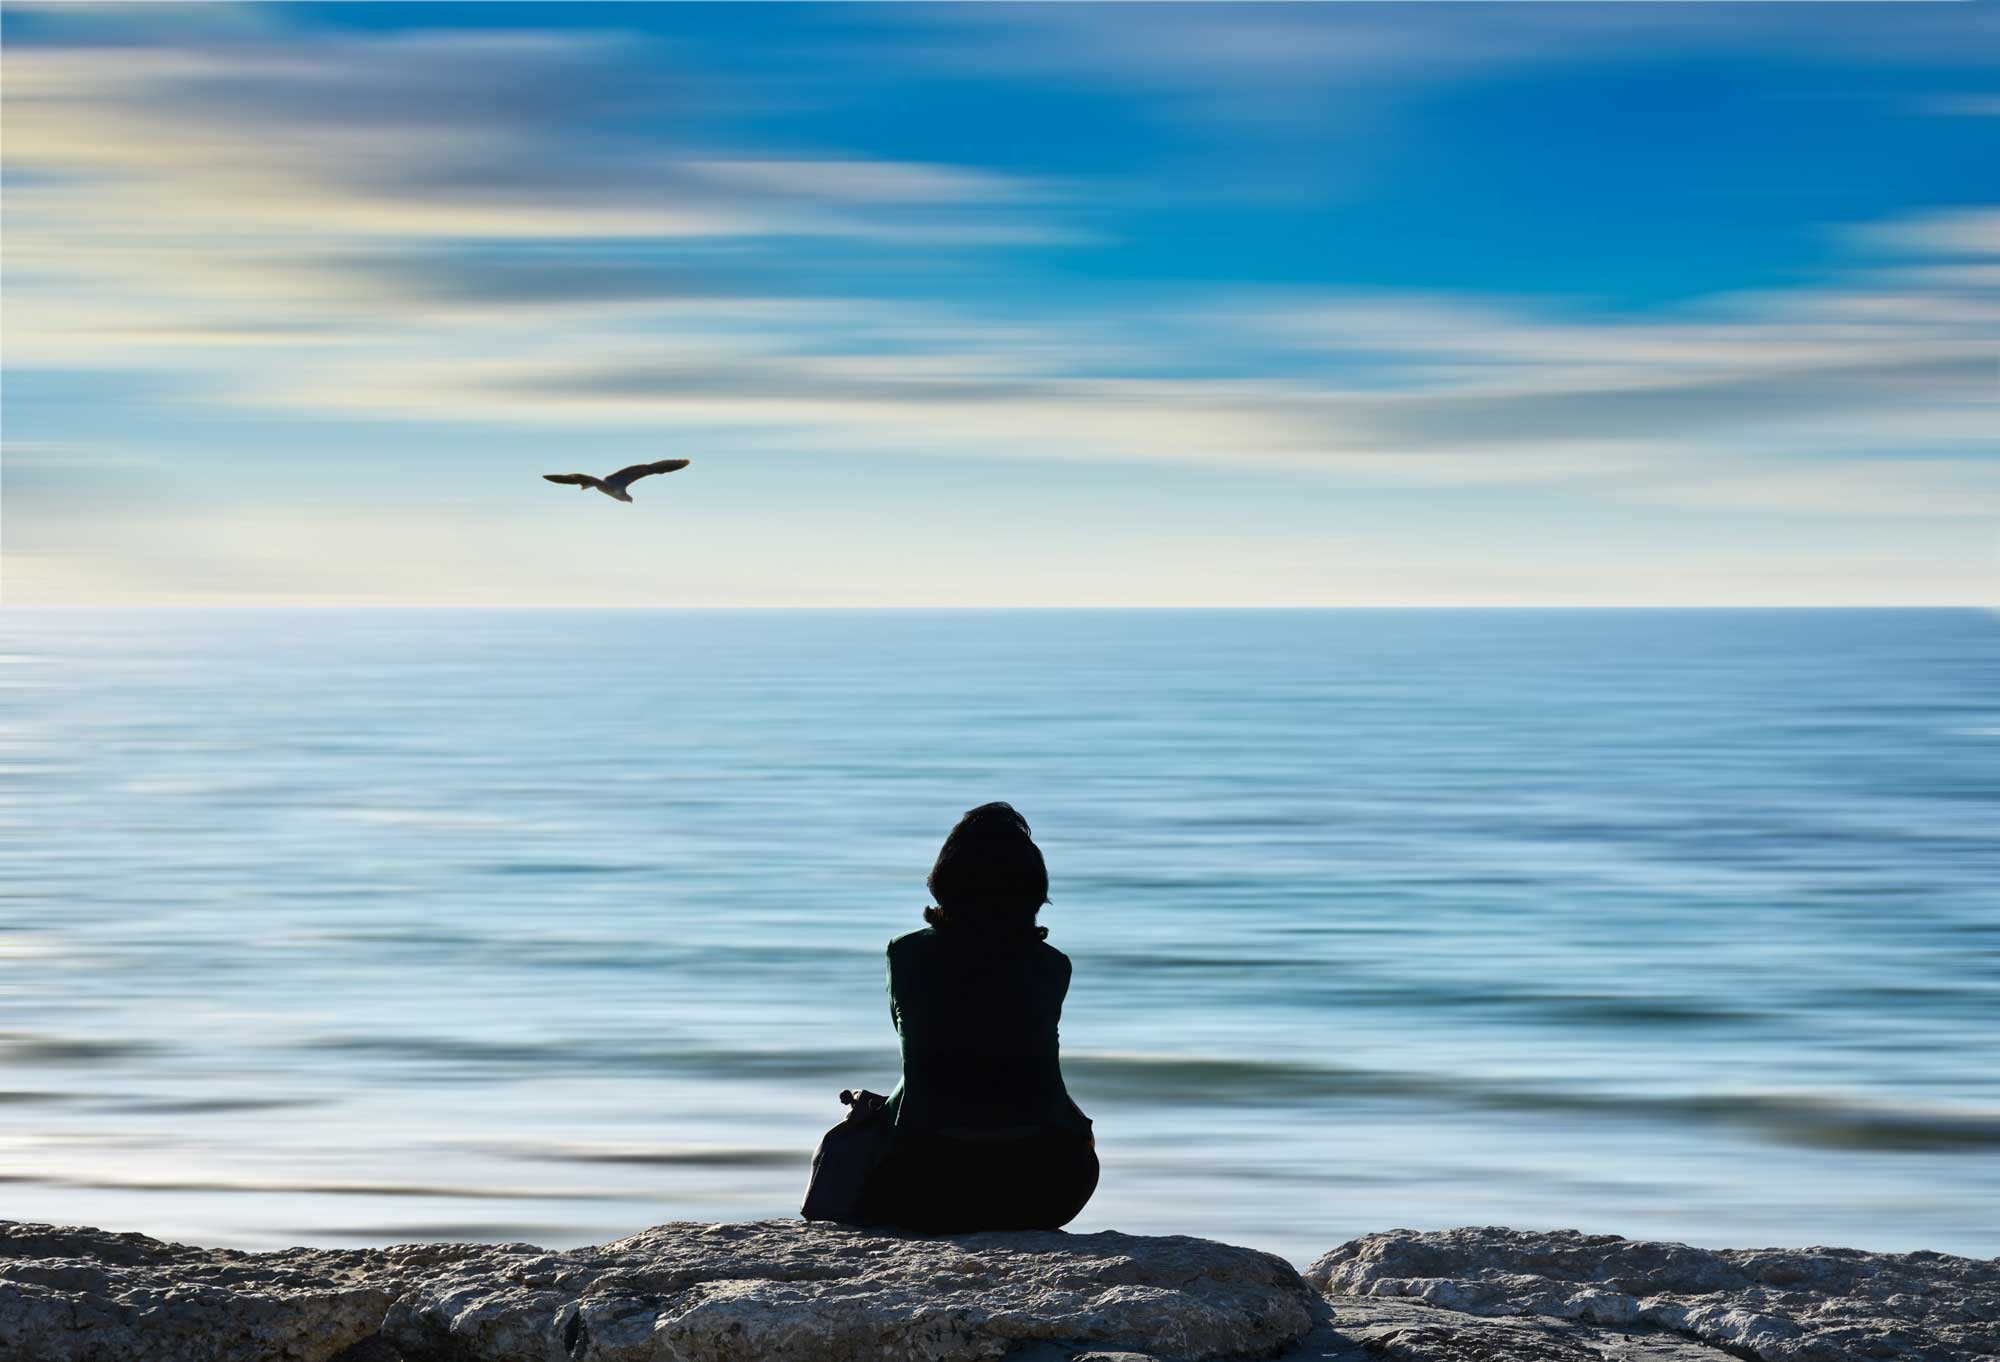 Tune into Nature's Power and Wisdom with this Relaxing Ocean Meditation